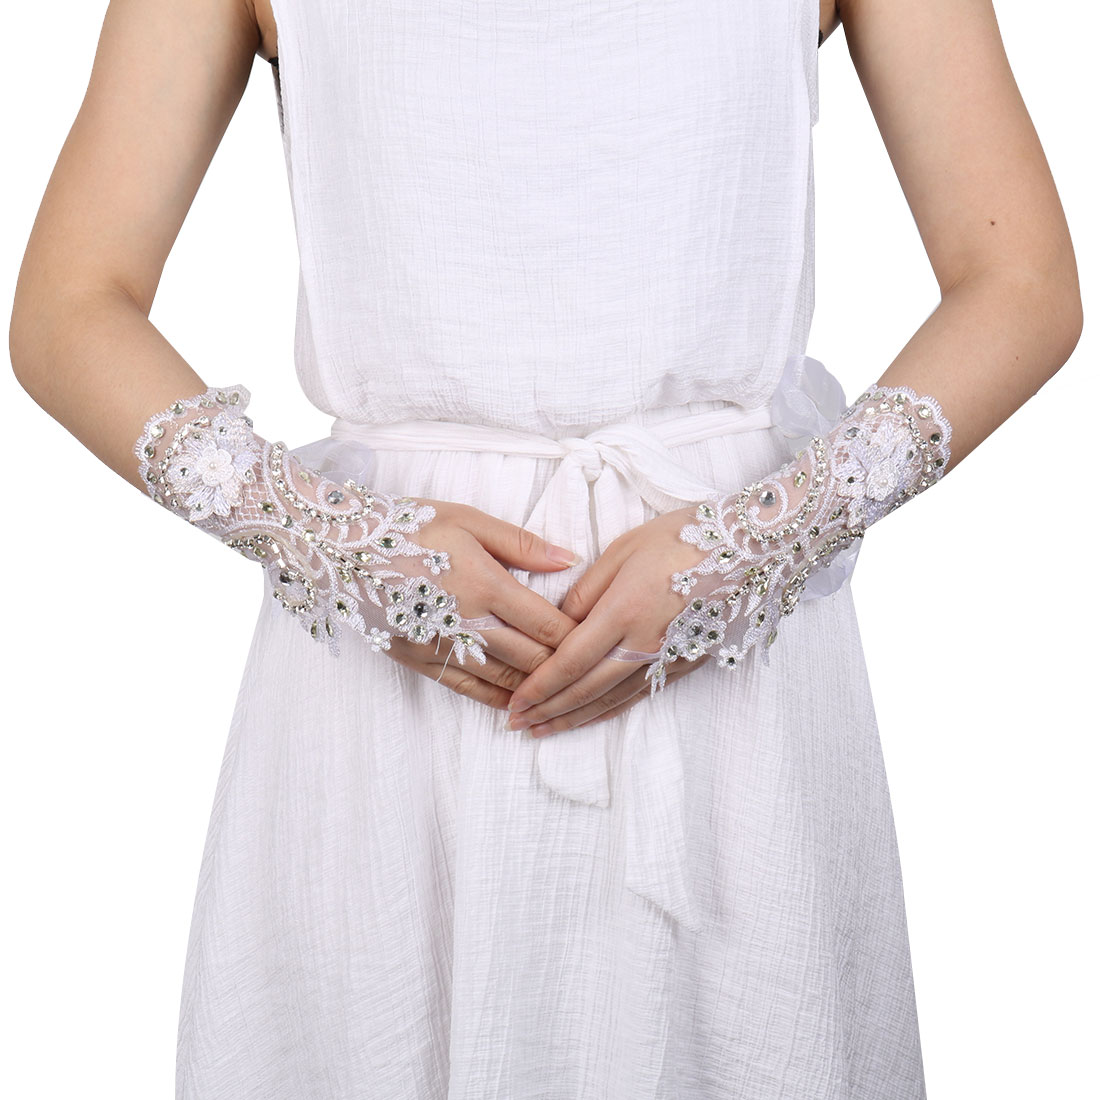 Lady DIY Handcraft Flower Decor Bridesmaid Hand Lace Fingerless Glove White Pair